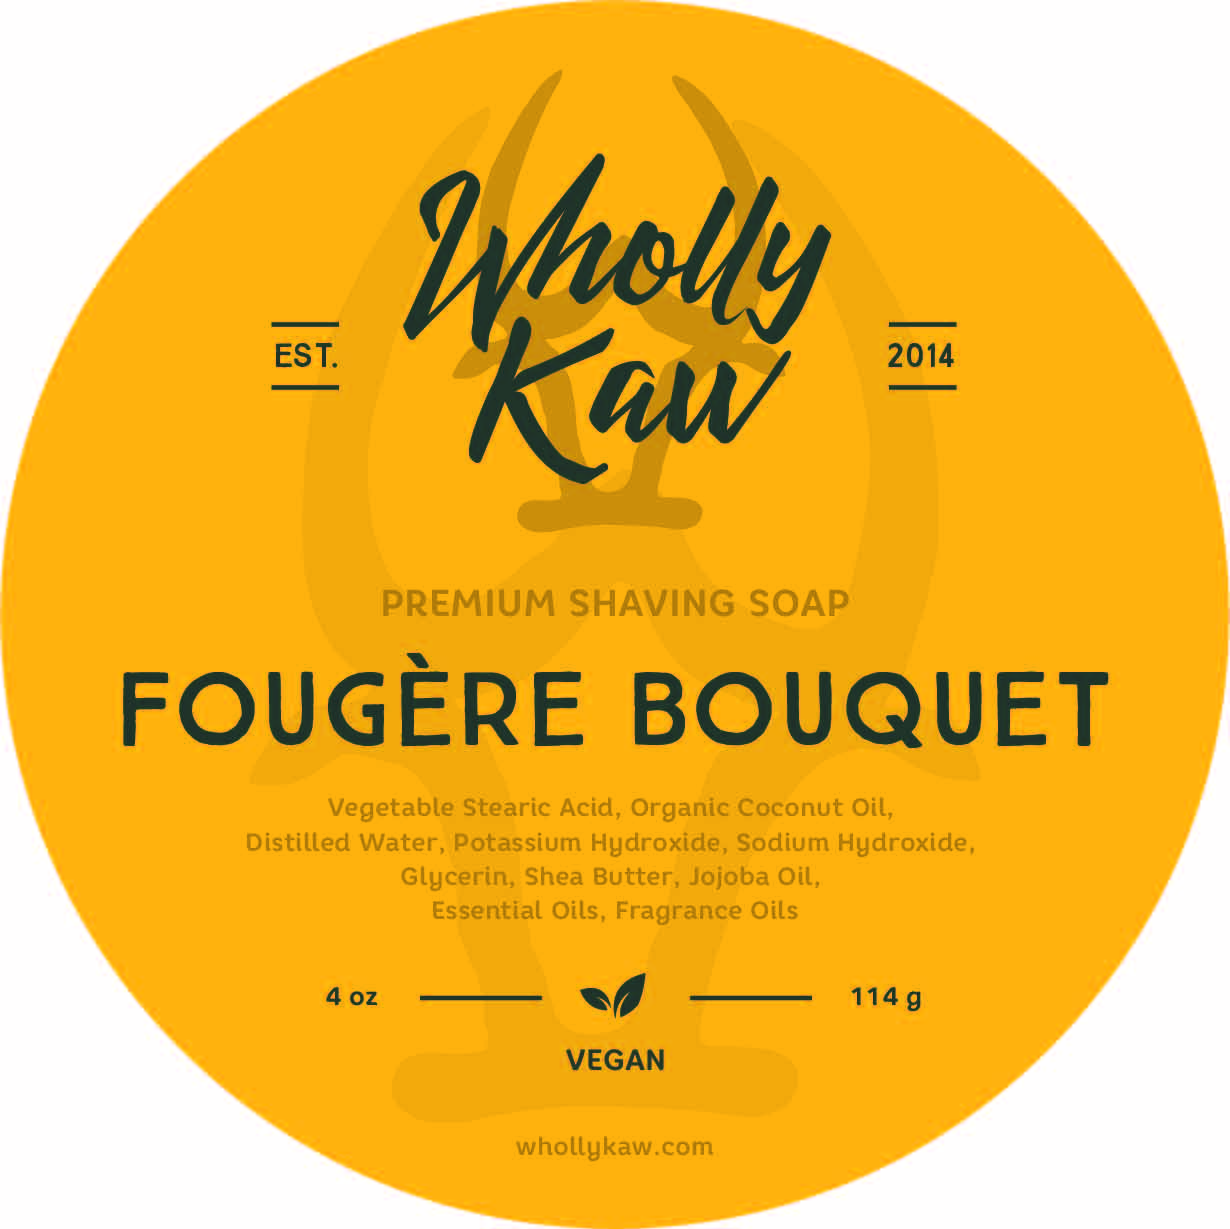 Wholly Kaw - Fougère Bouquet - Soap (Vegan) image